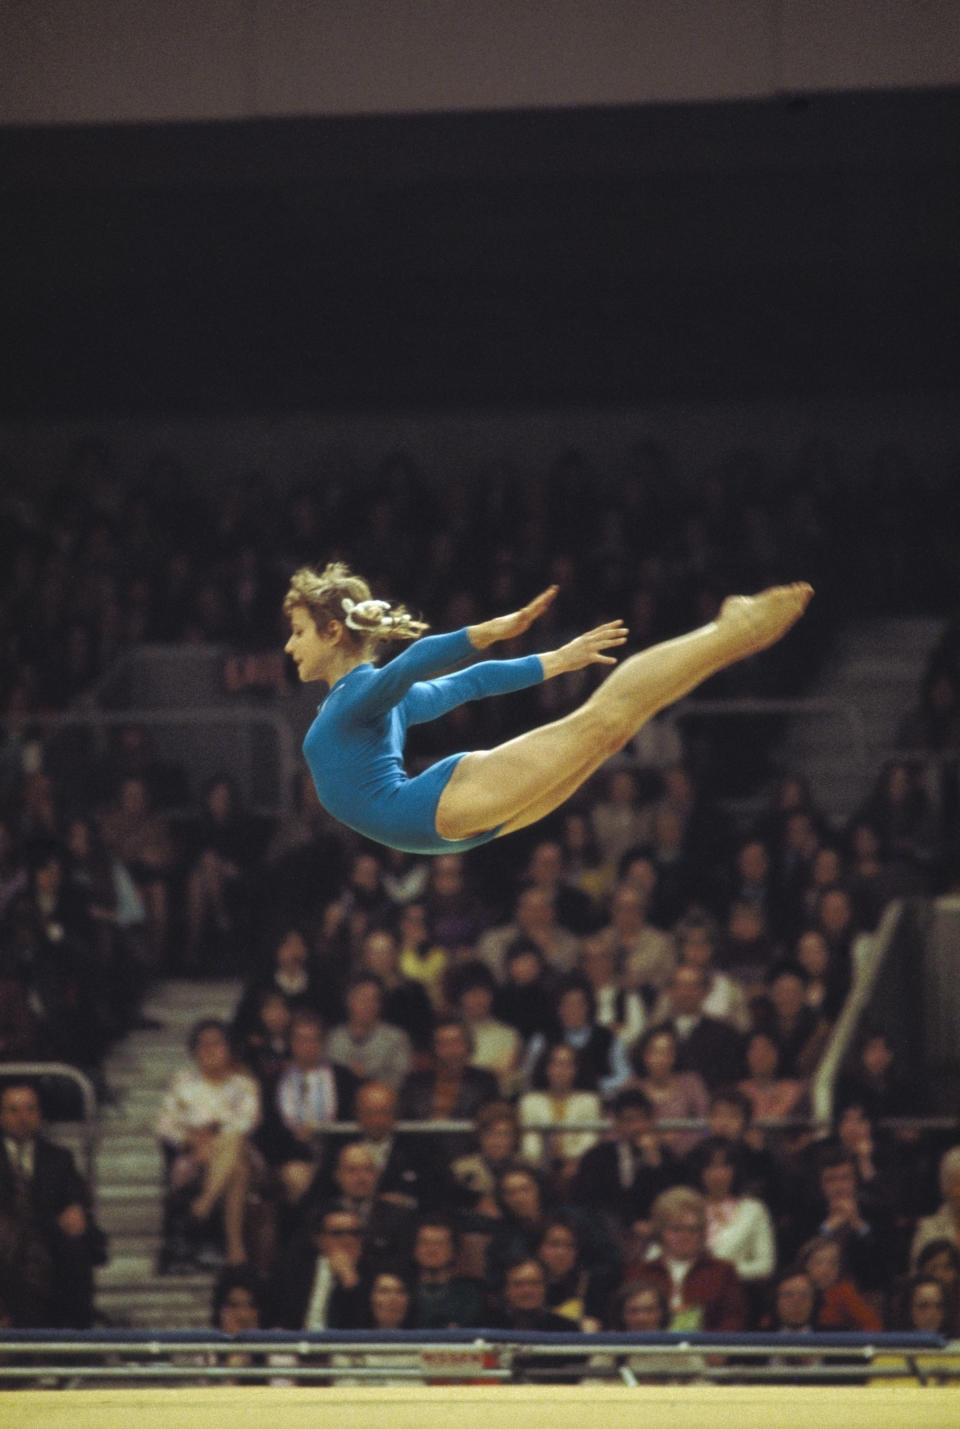 <b>1972 Munich Olympics </b><br> 1972: Olga Korbut of the Soviet Union in action during the gymnastics competition at the 1972 Olympic Games in Munich, Germany. The pretty gymnast won gold on the balance beam, the floor exercises and was also a member of the winning all-round team aswell as a silver medalist on the uneven parallel bars. She captured the hearts of the world with her impish style and brilliant smile. Mandatory Credit: Allsport UK/Allsport